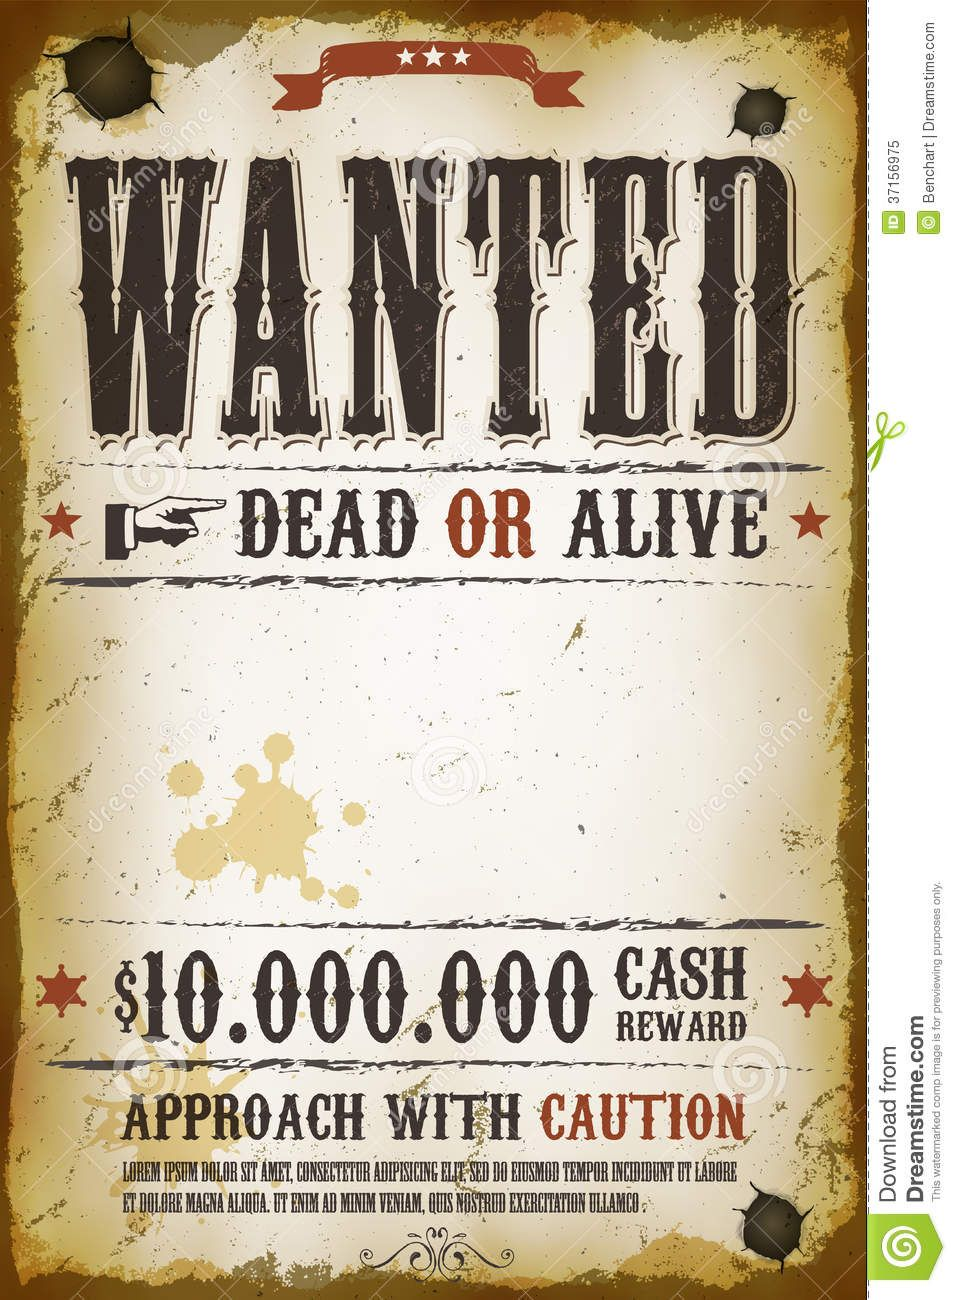 Wanted poster template for microsoft word